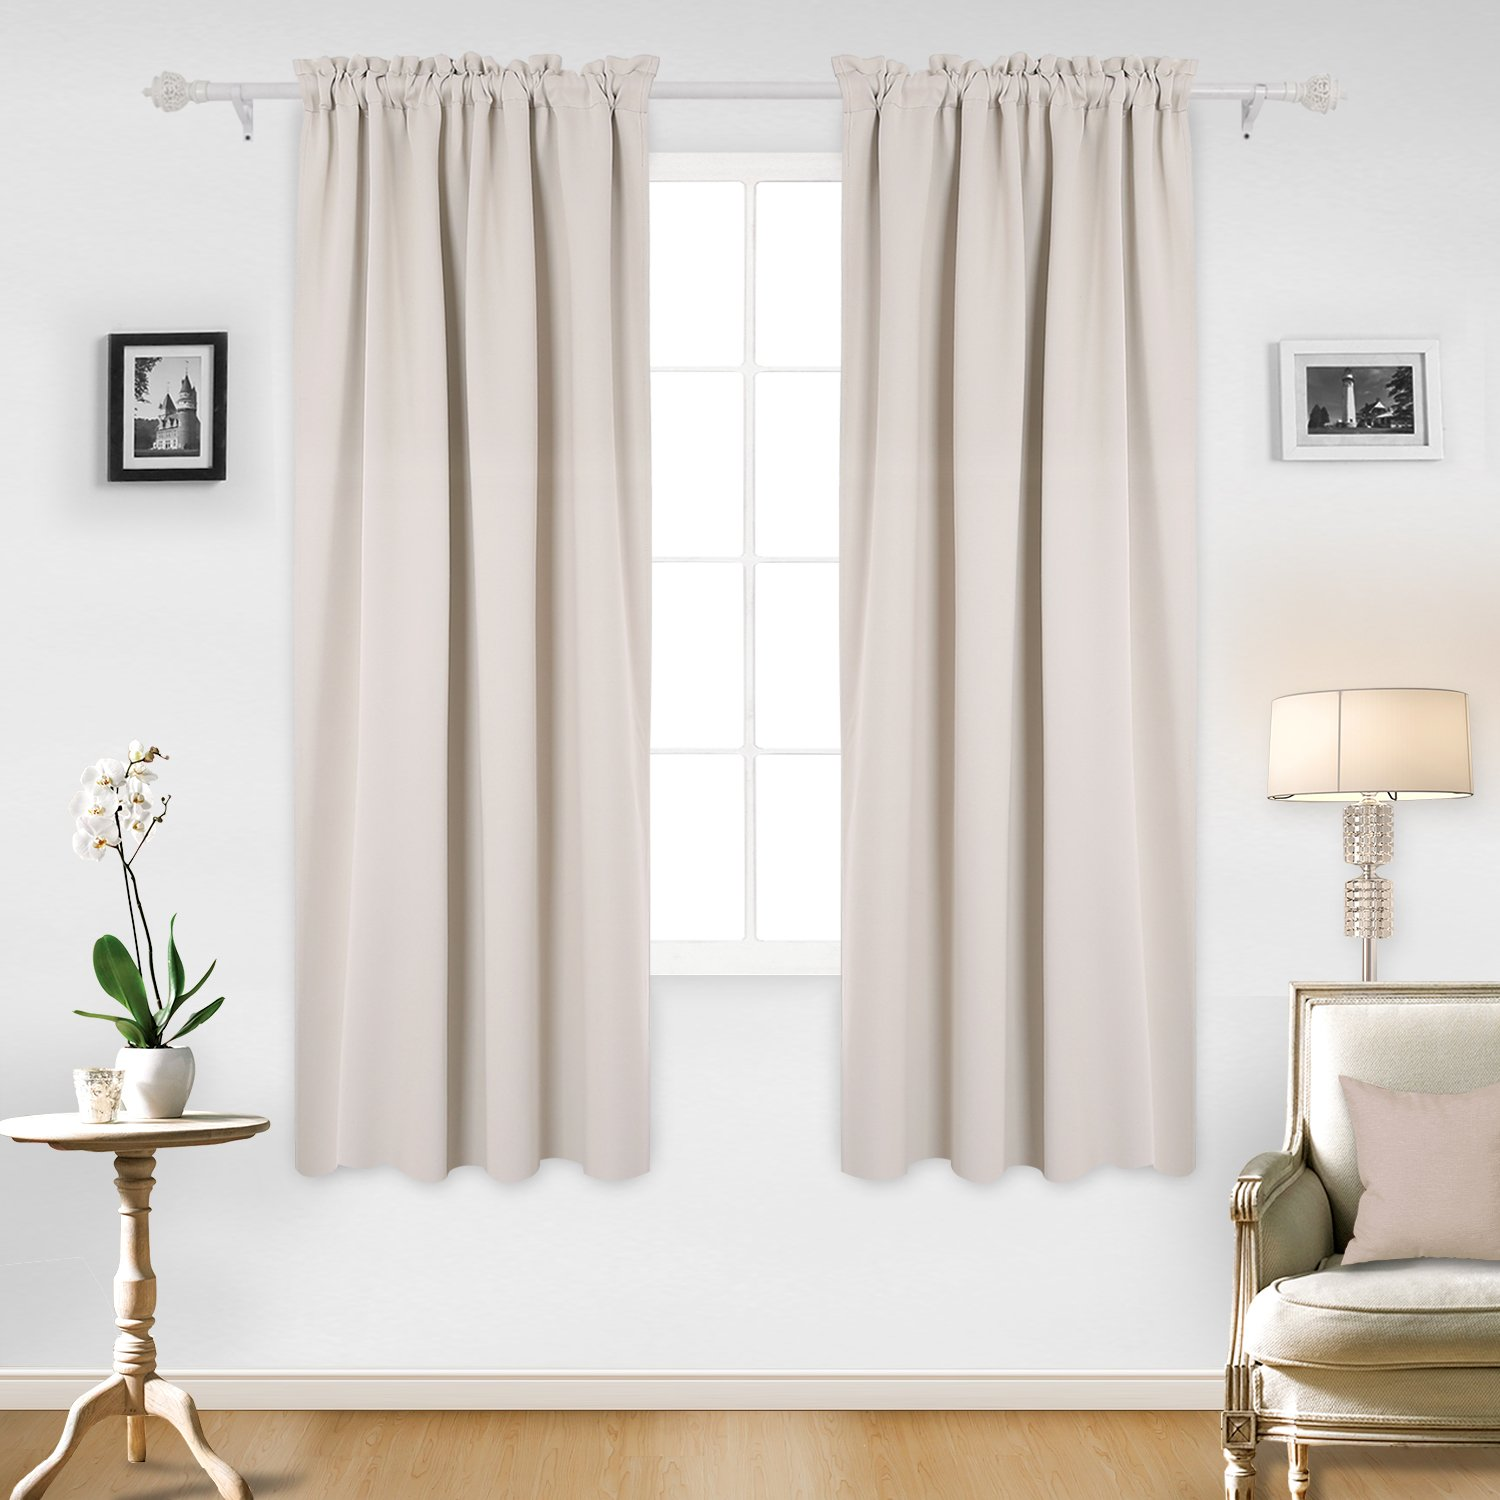 Deconovo Fashionable Rod Pocket Blackout Curtains Room Darkening Curtains Window Treatments Shade Curtains for Office 52W x 72L Inch Light Beige Set of 2